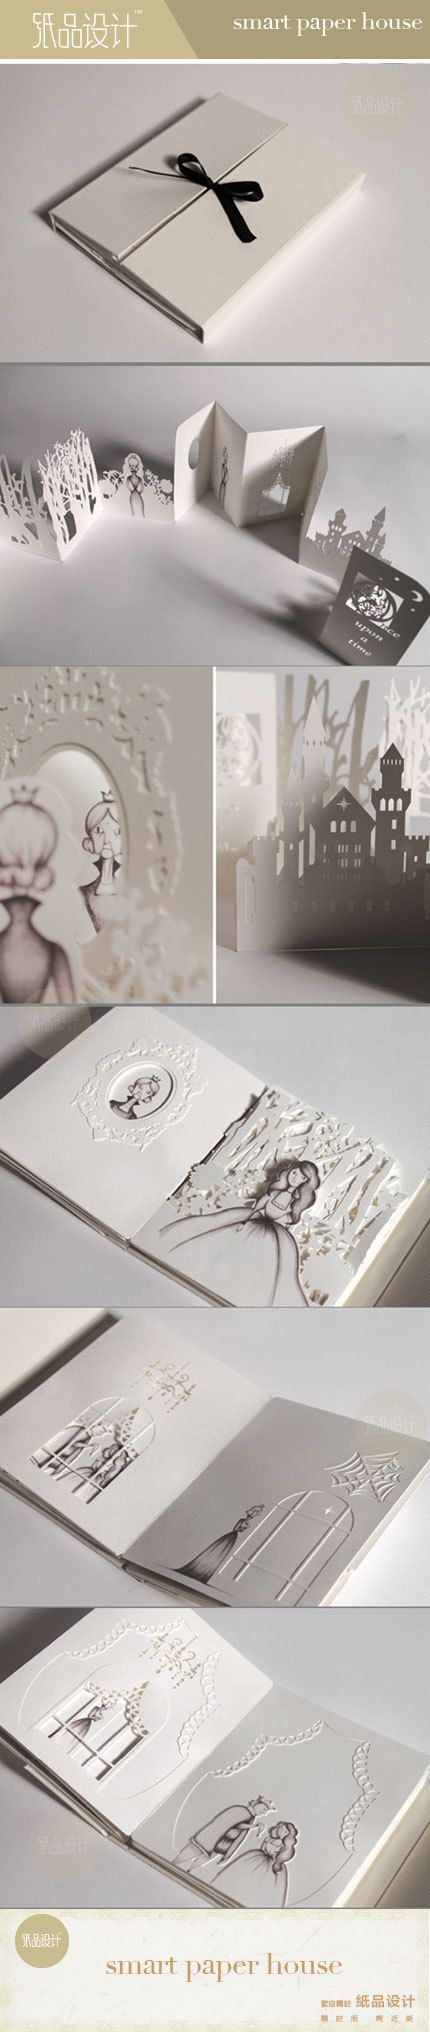 The Hiroko Matshushita The paper-cut book works, wow